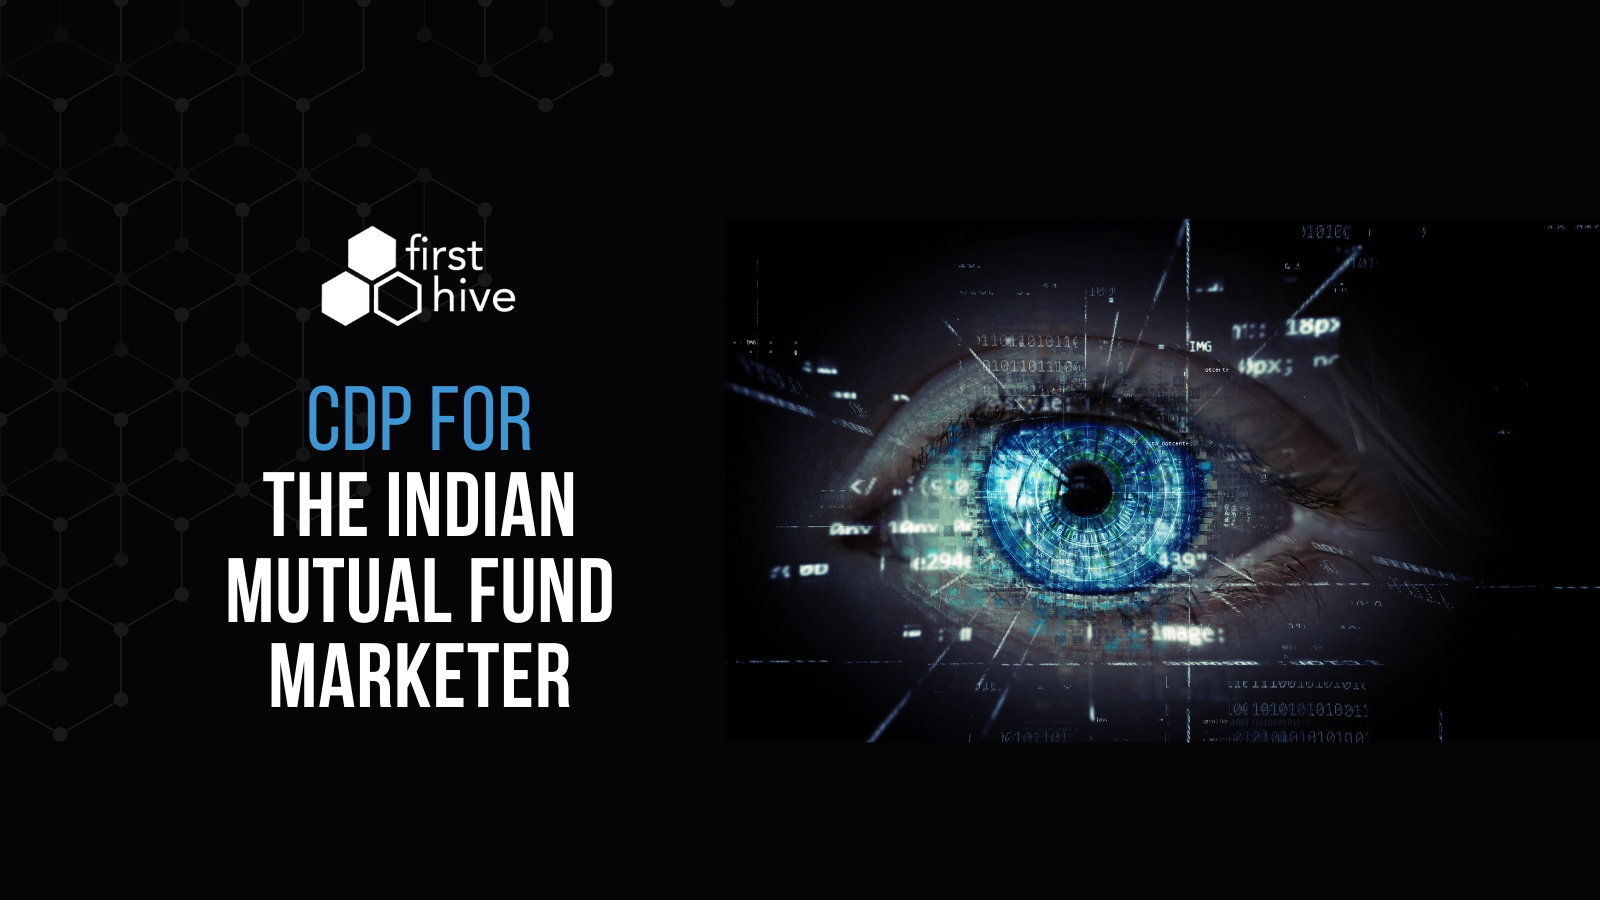 Why have CDPs caught the fancy of Indian Mutual Fund Marketers?